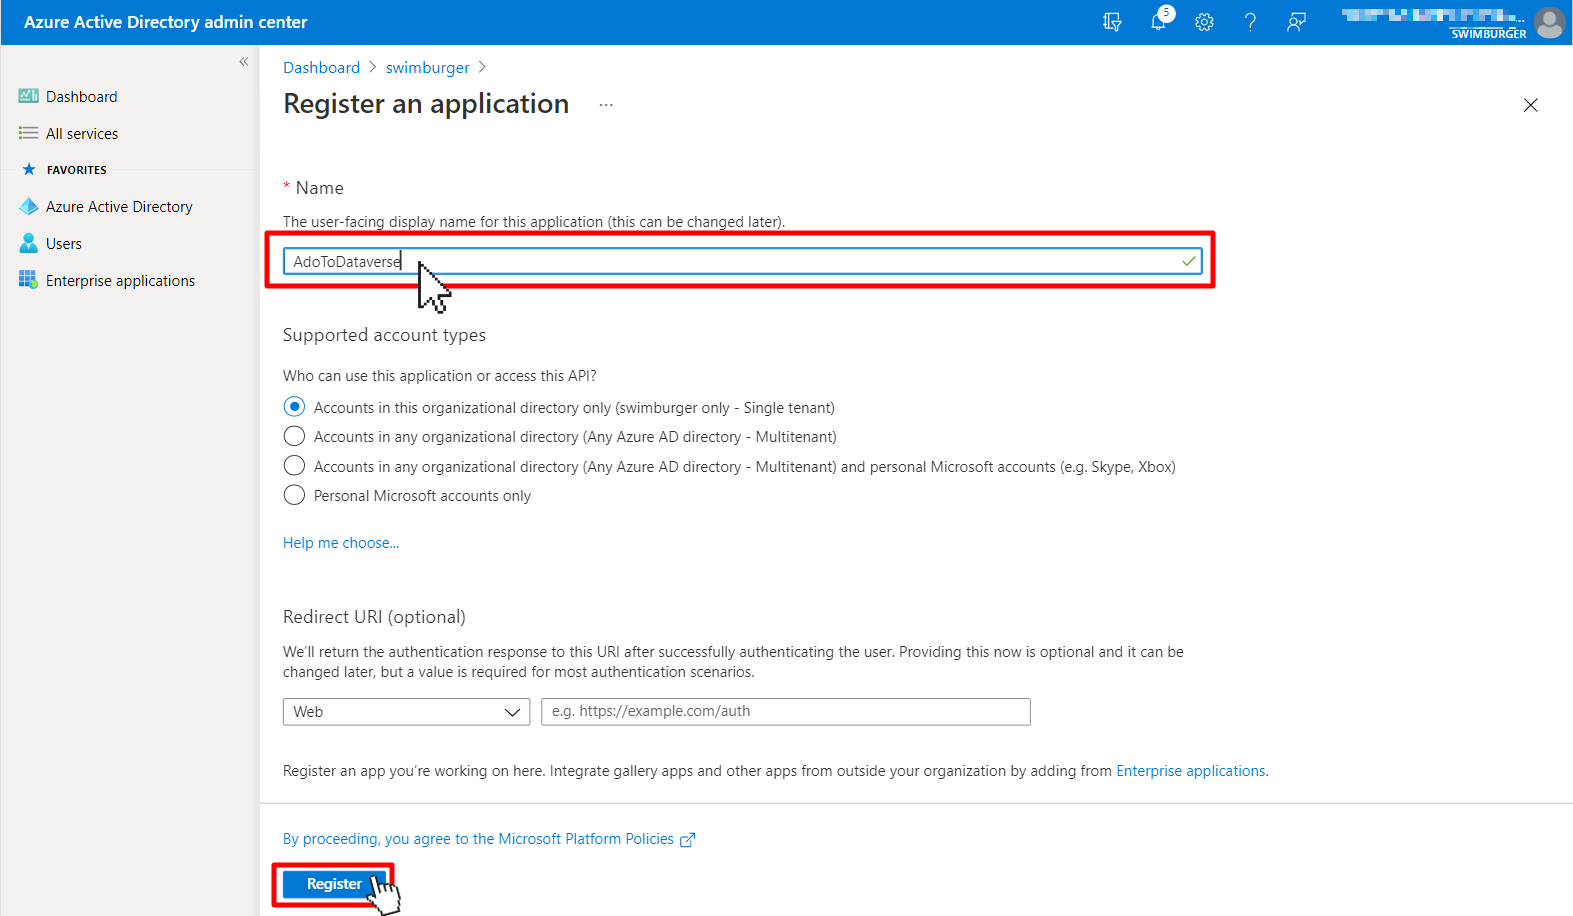 Screen to register an application in Azure Active Directory.